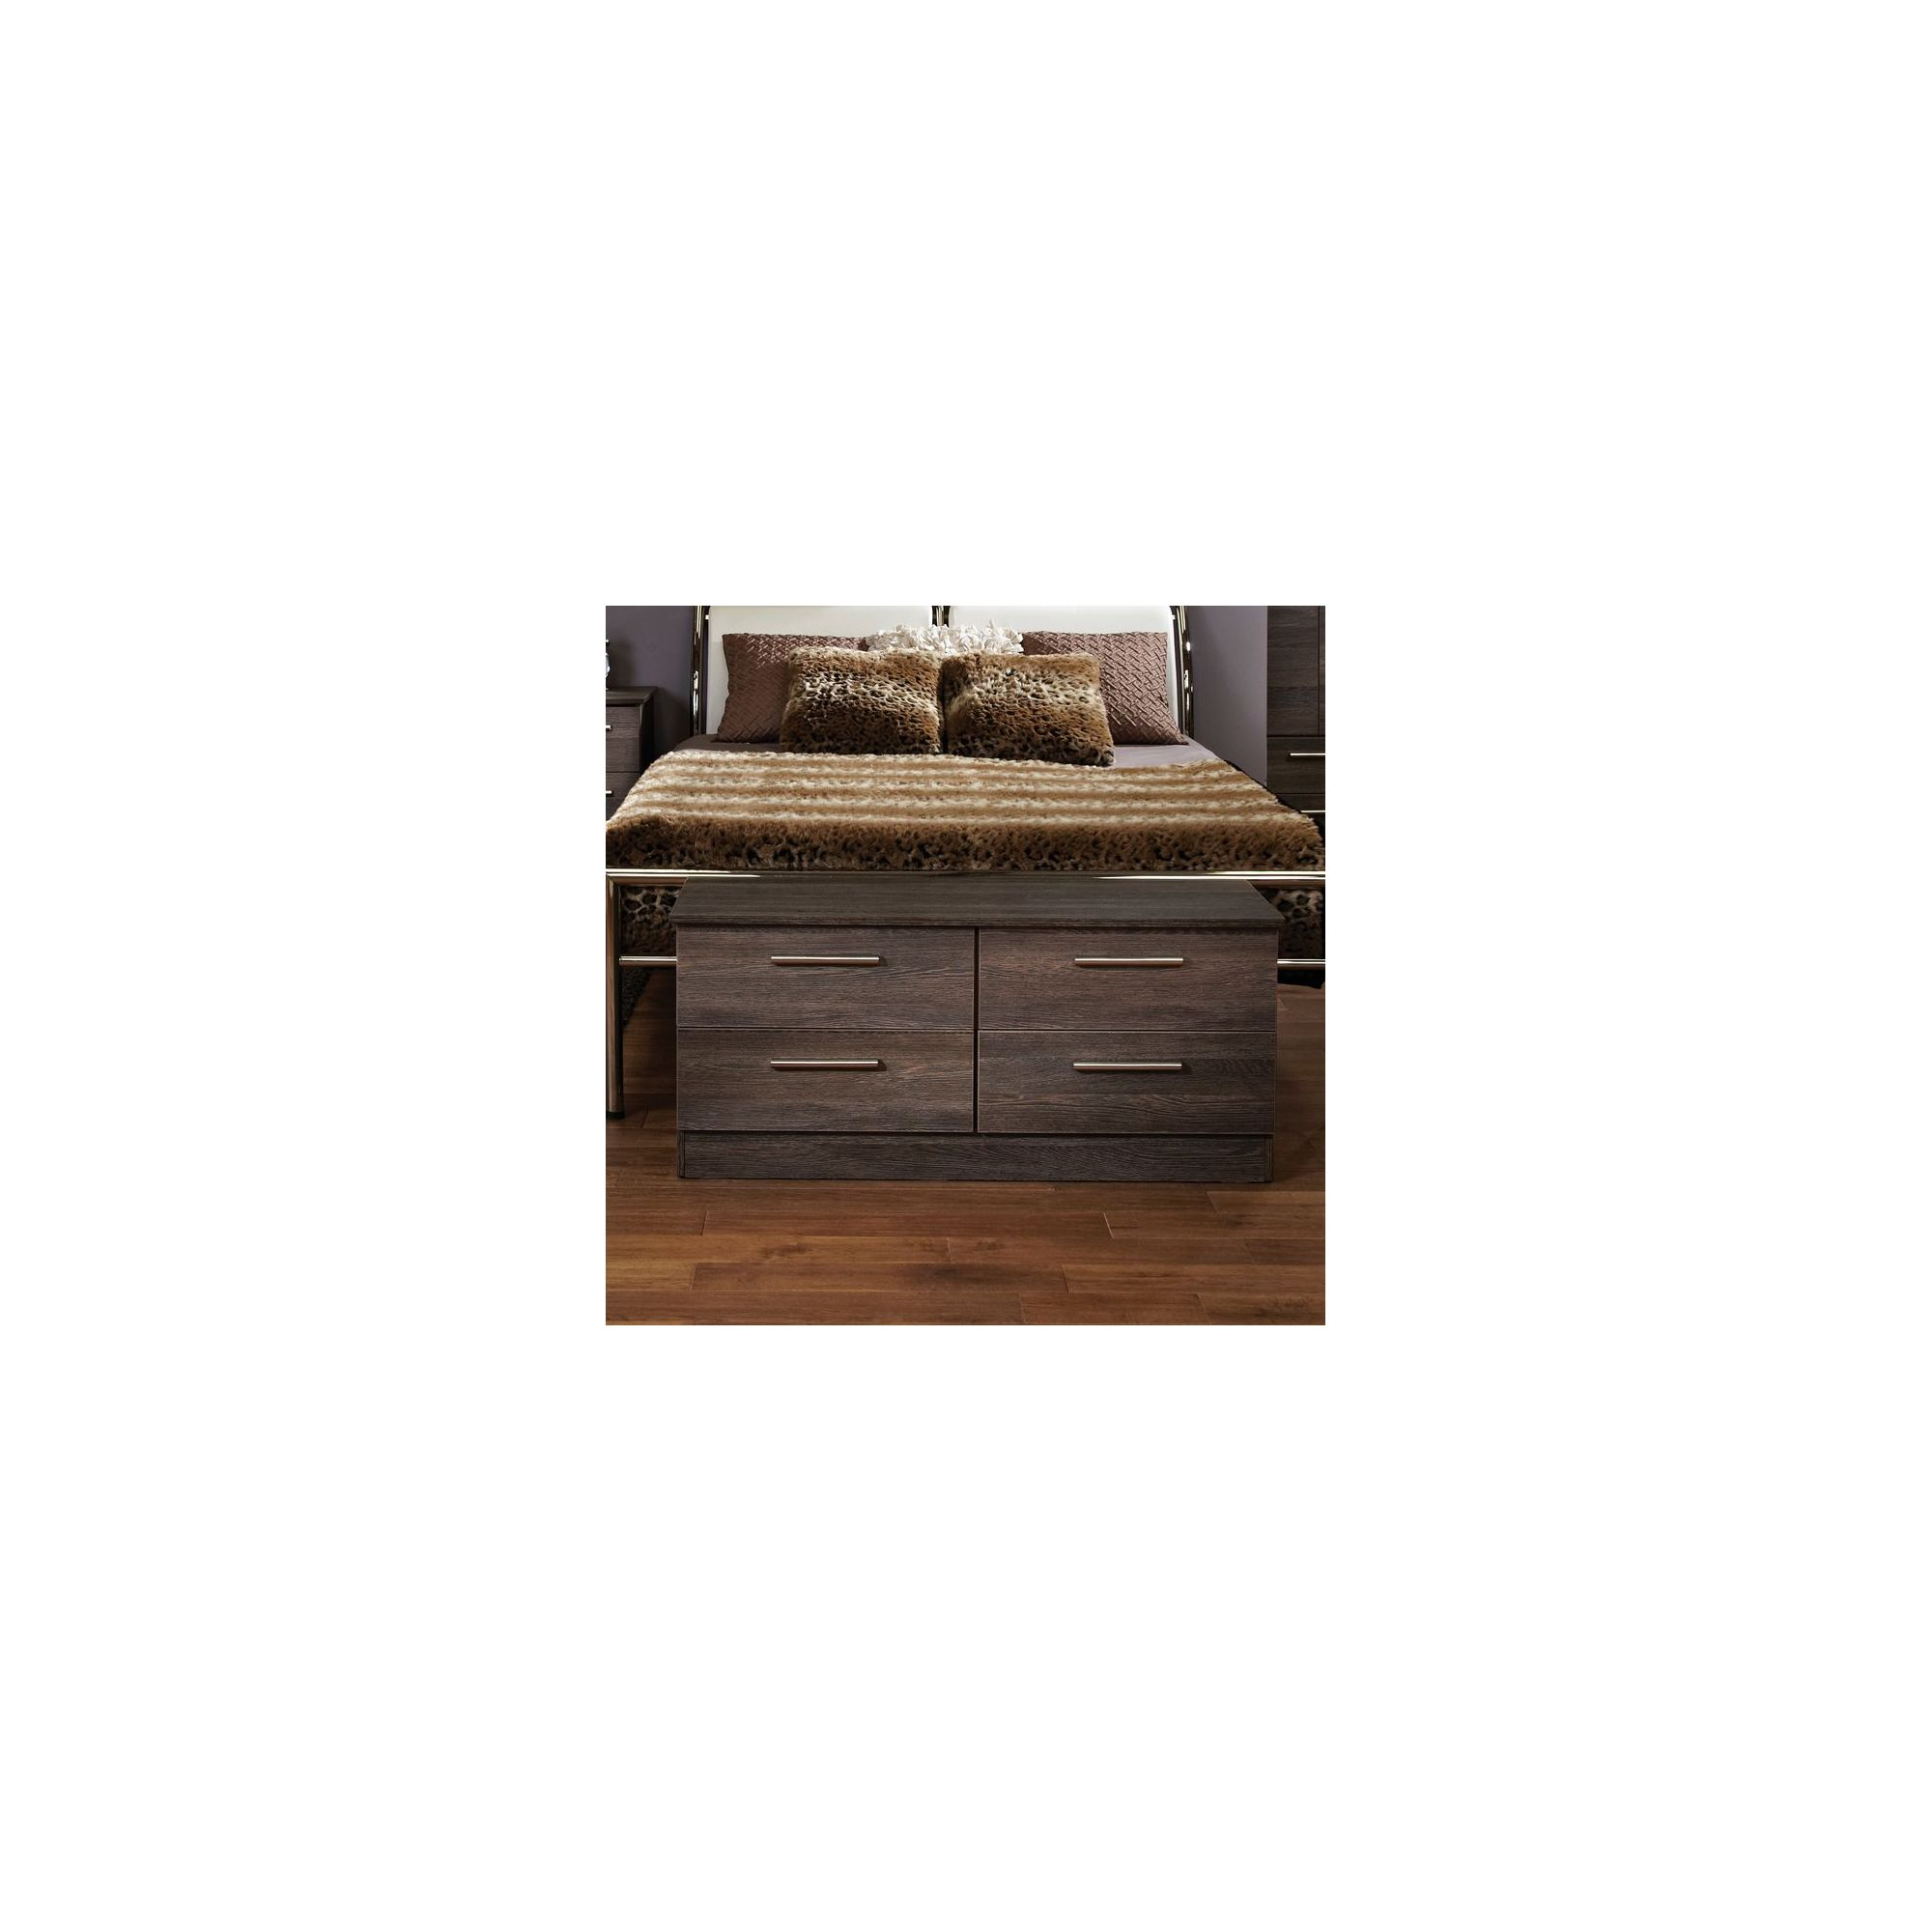 Welcome Furniture Contrast 4 Drawer Chest - Panga at Tesco Direct